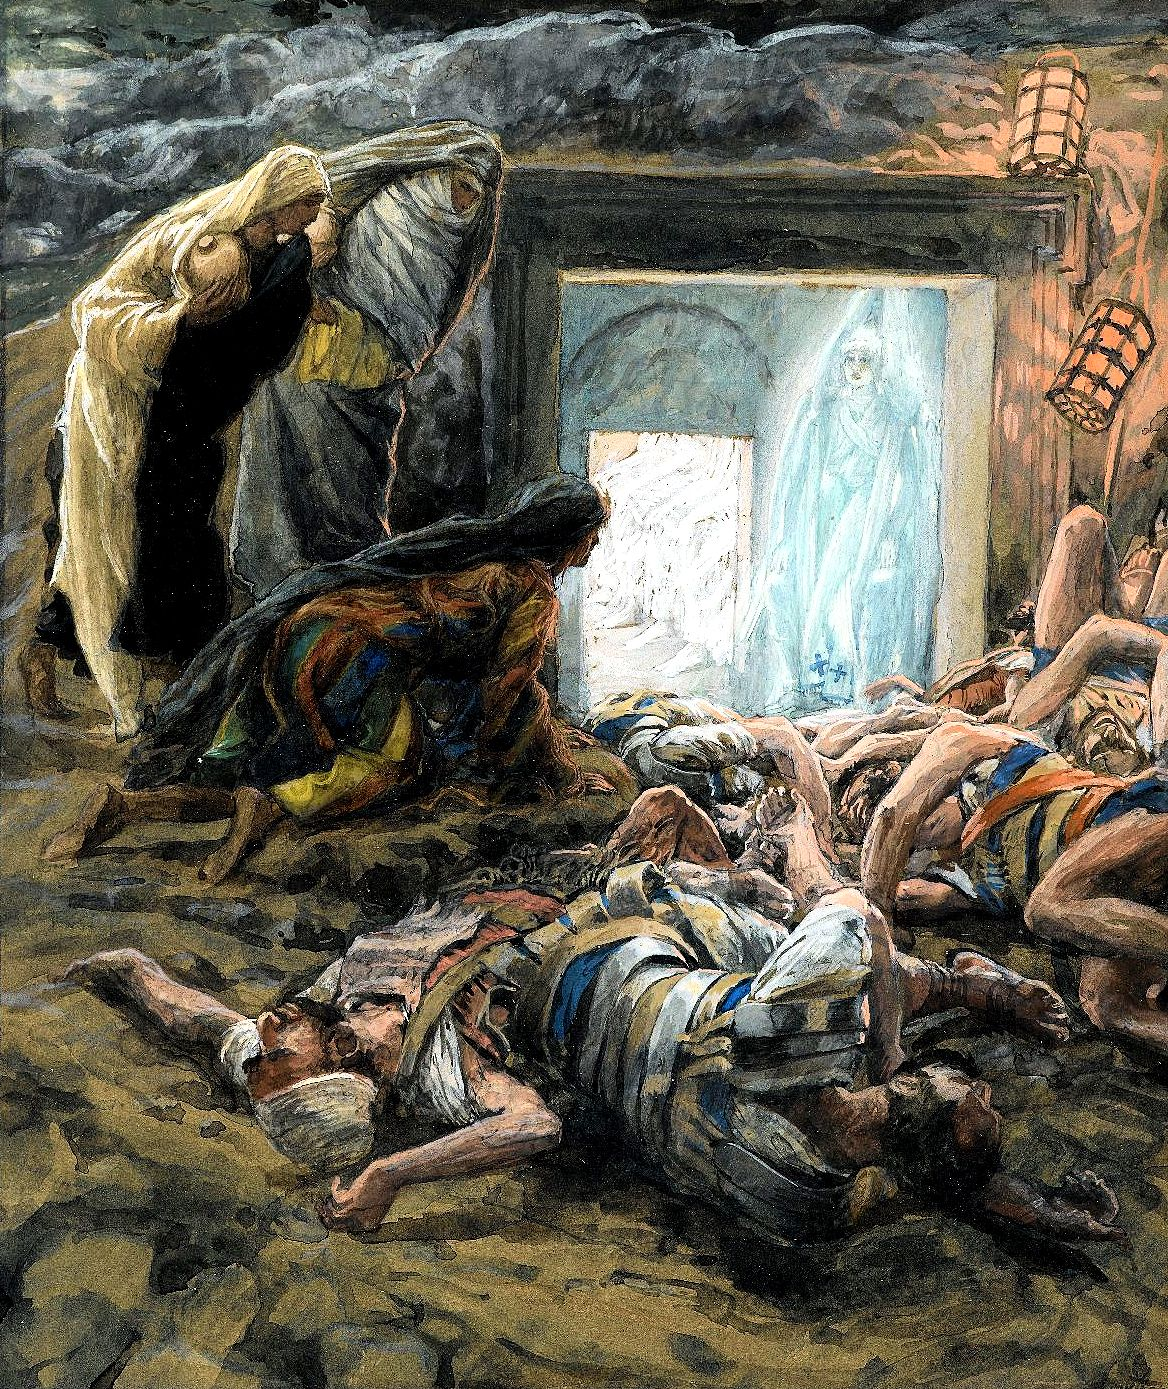 Madeleine et les saintes femmes au tombeau (Mary Magdalene and the Holy Women at the Tomb).